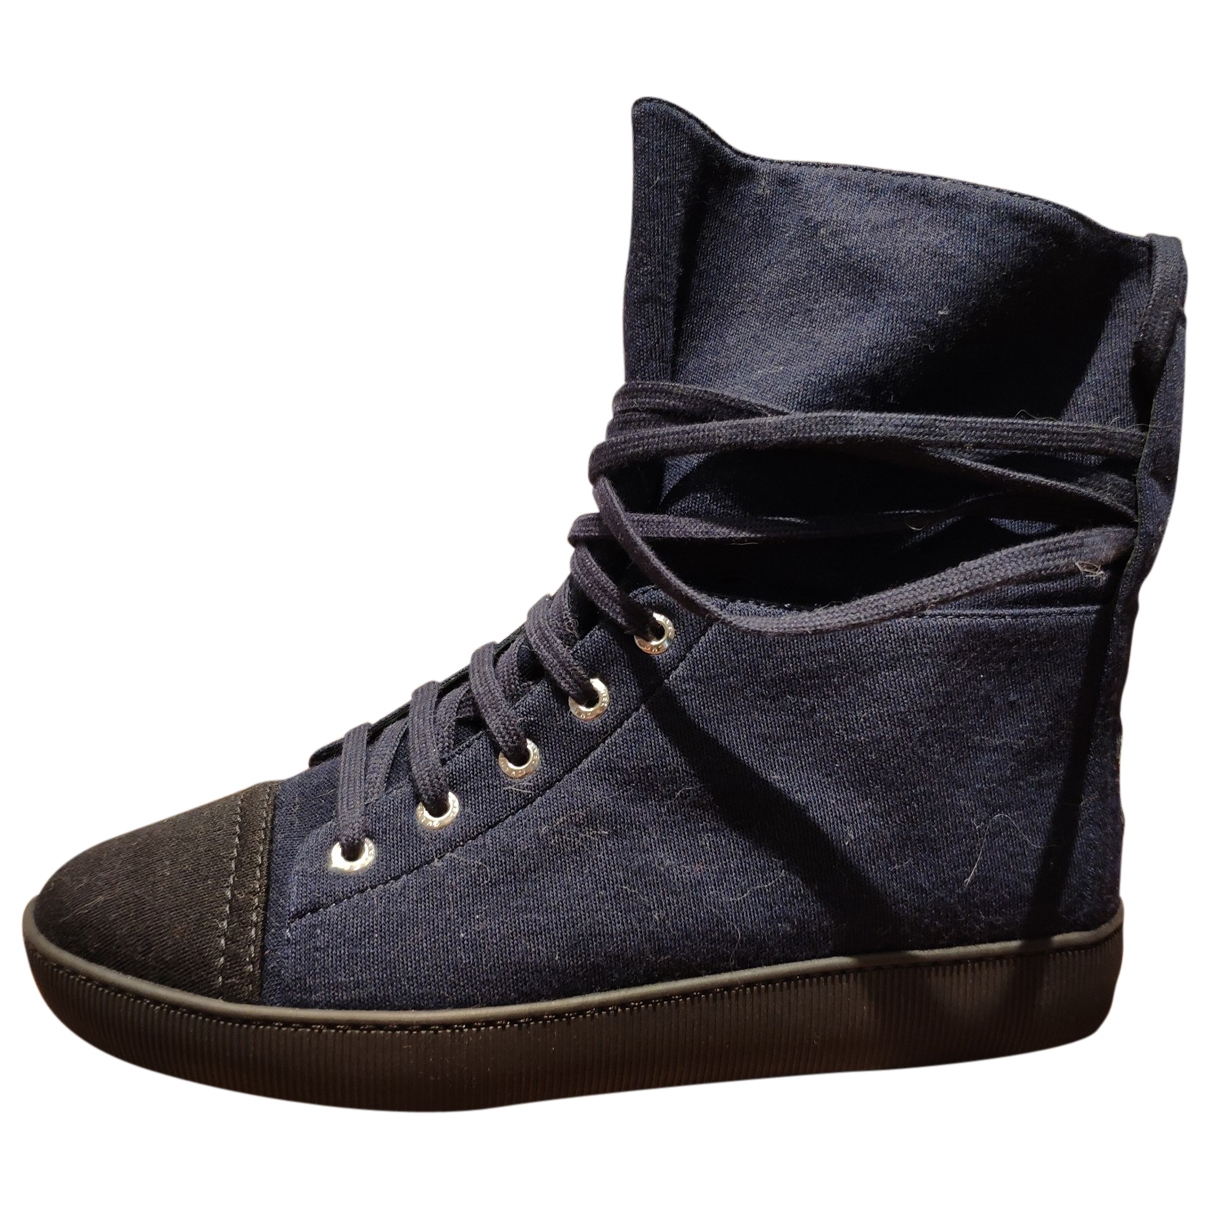 Chanel \N Navy Cloth Ankle boots for Women 37 EU